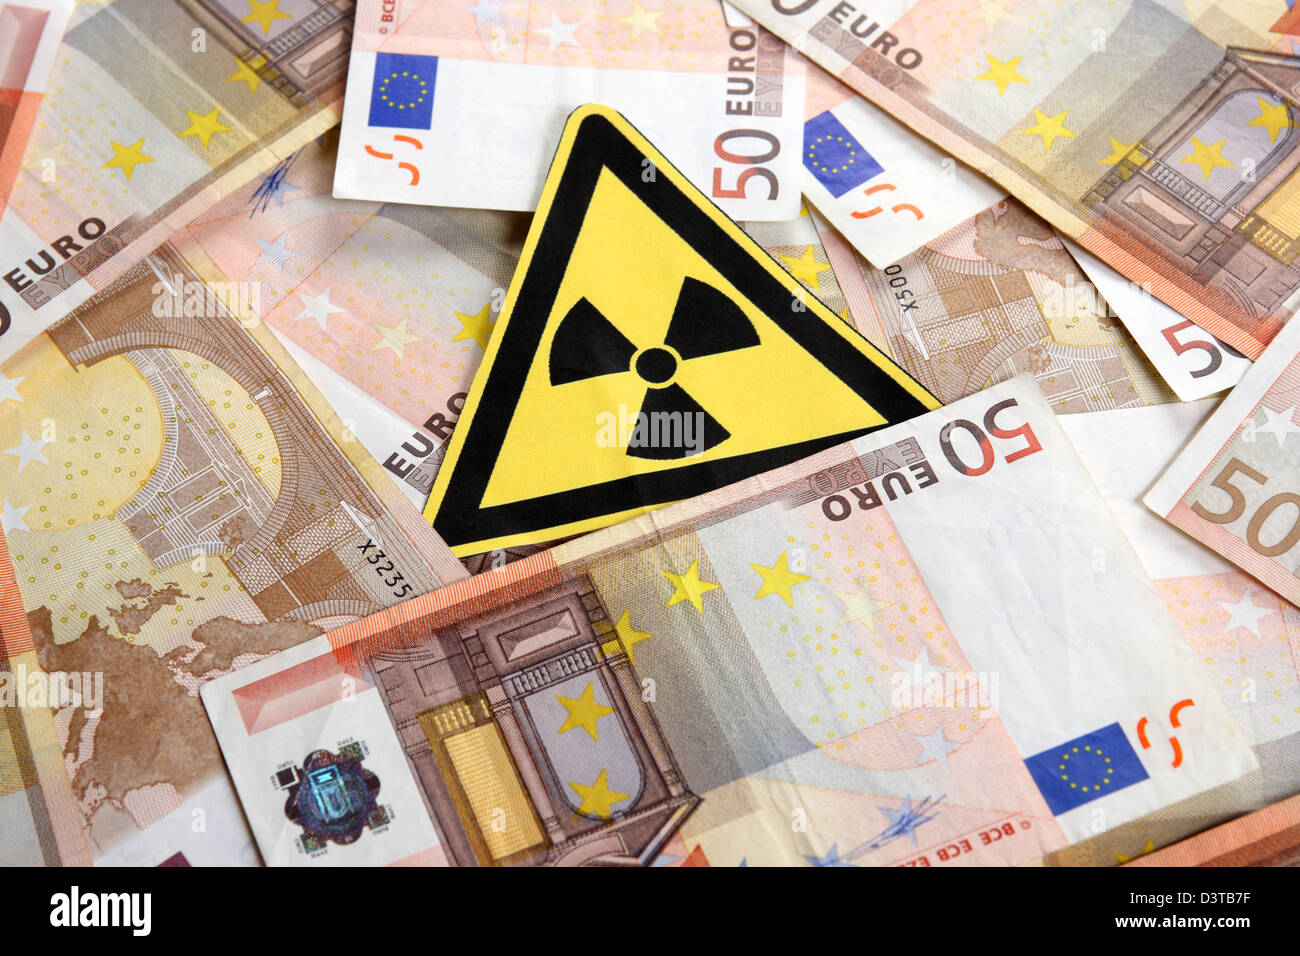 Berlin, Germany, symbol Photo nuclear power costs - Stock Image